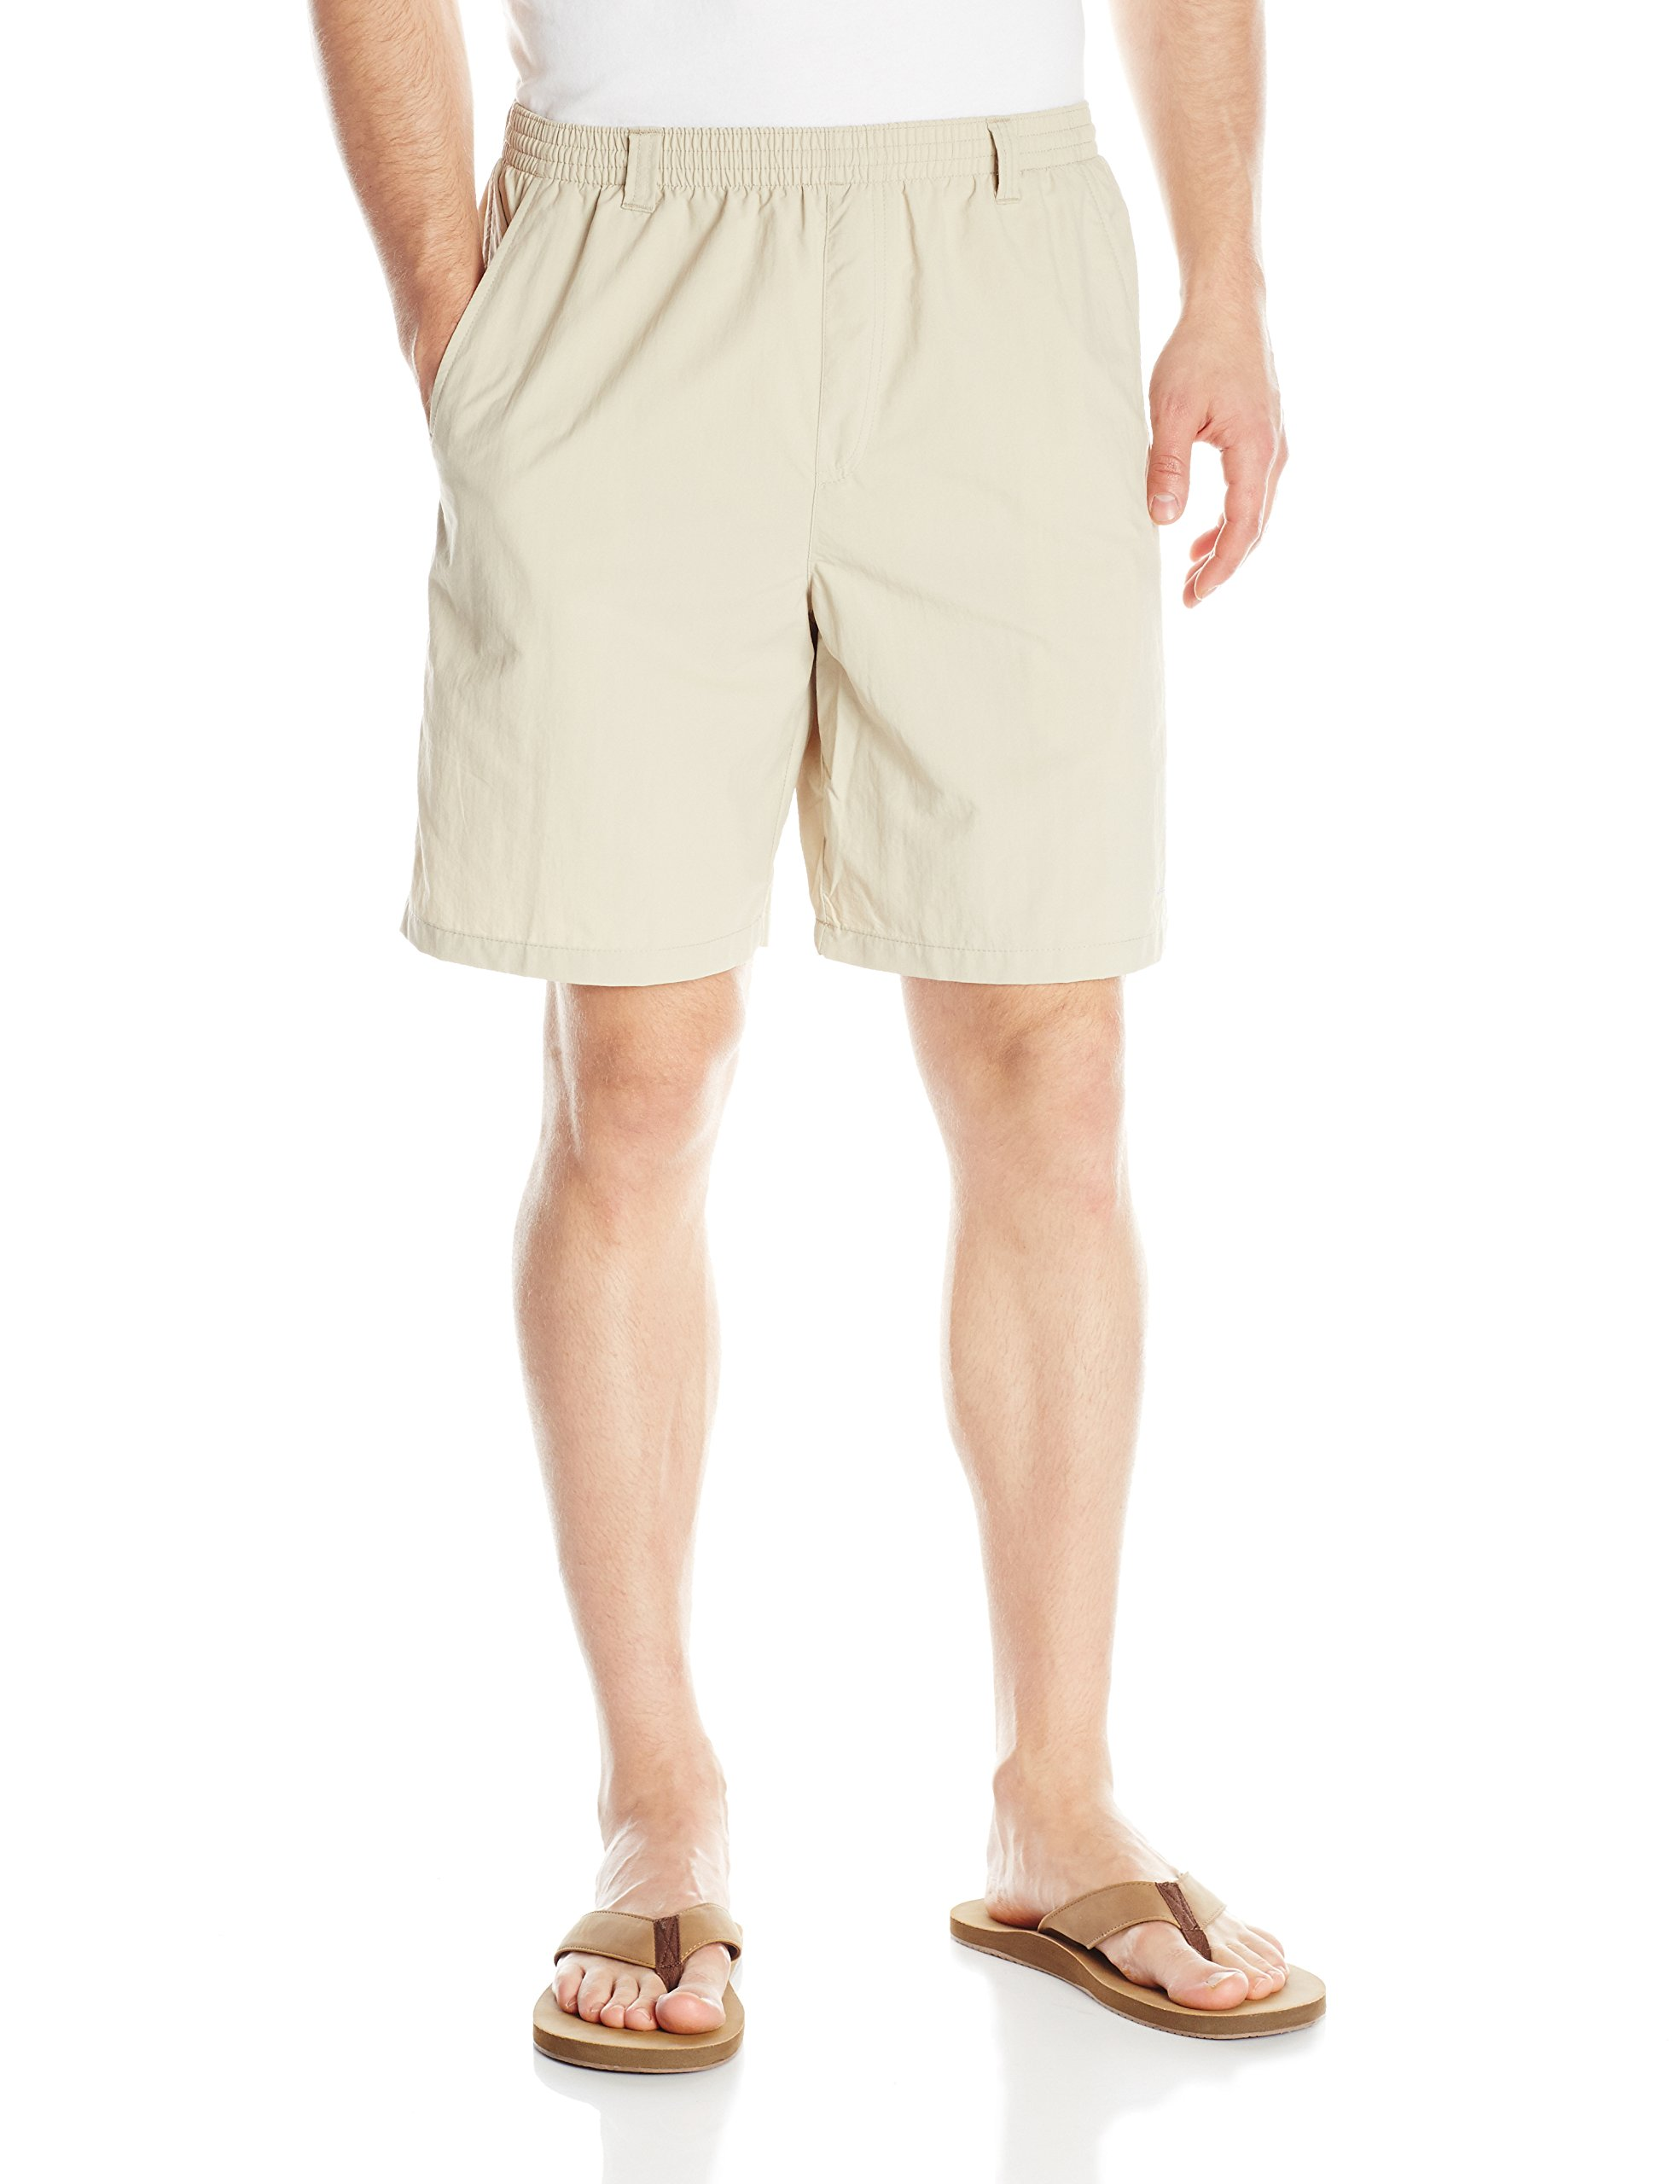 d473baa200 Columbia Men's Backcast III Water Shorts, Fossil, Large/8-Inch ...